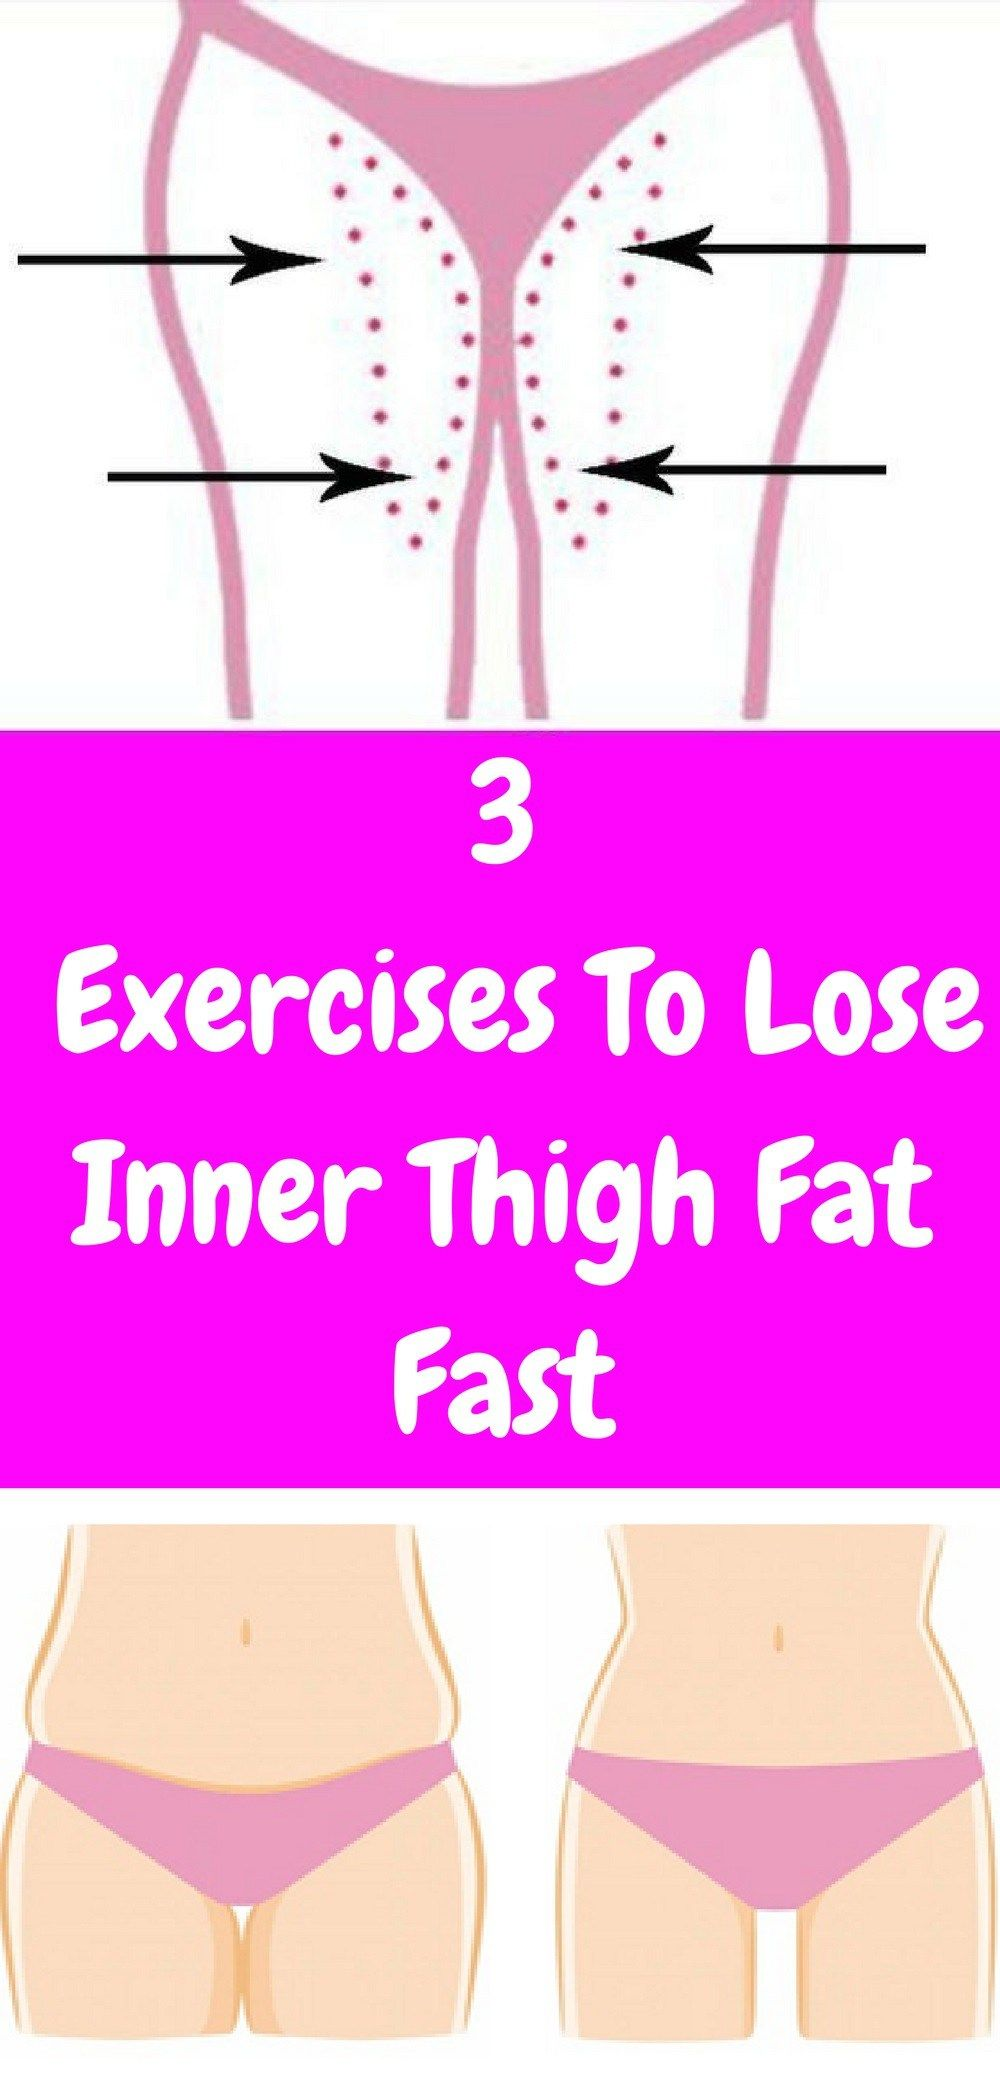 How to lose stomach fat while building muscle